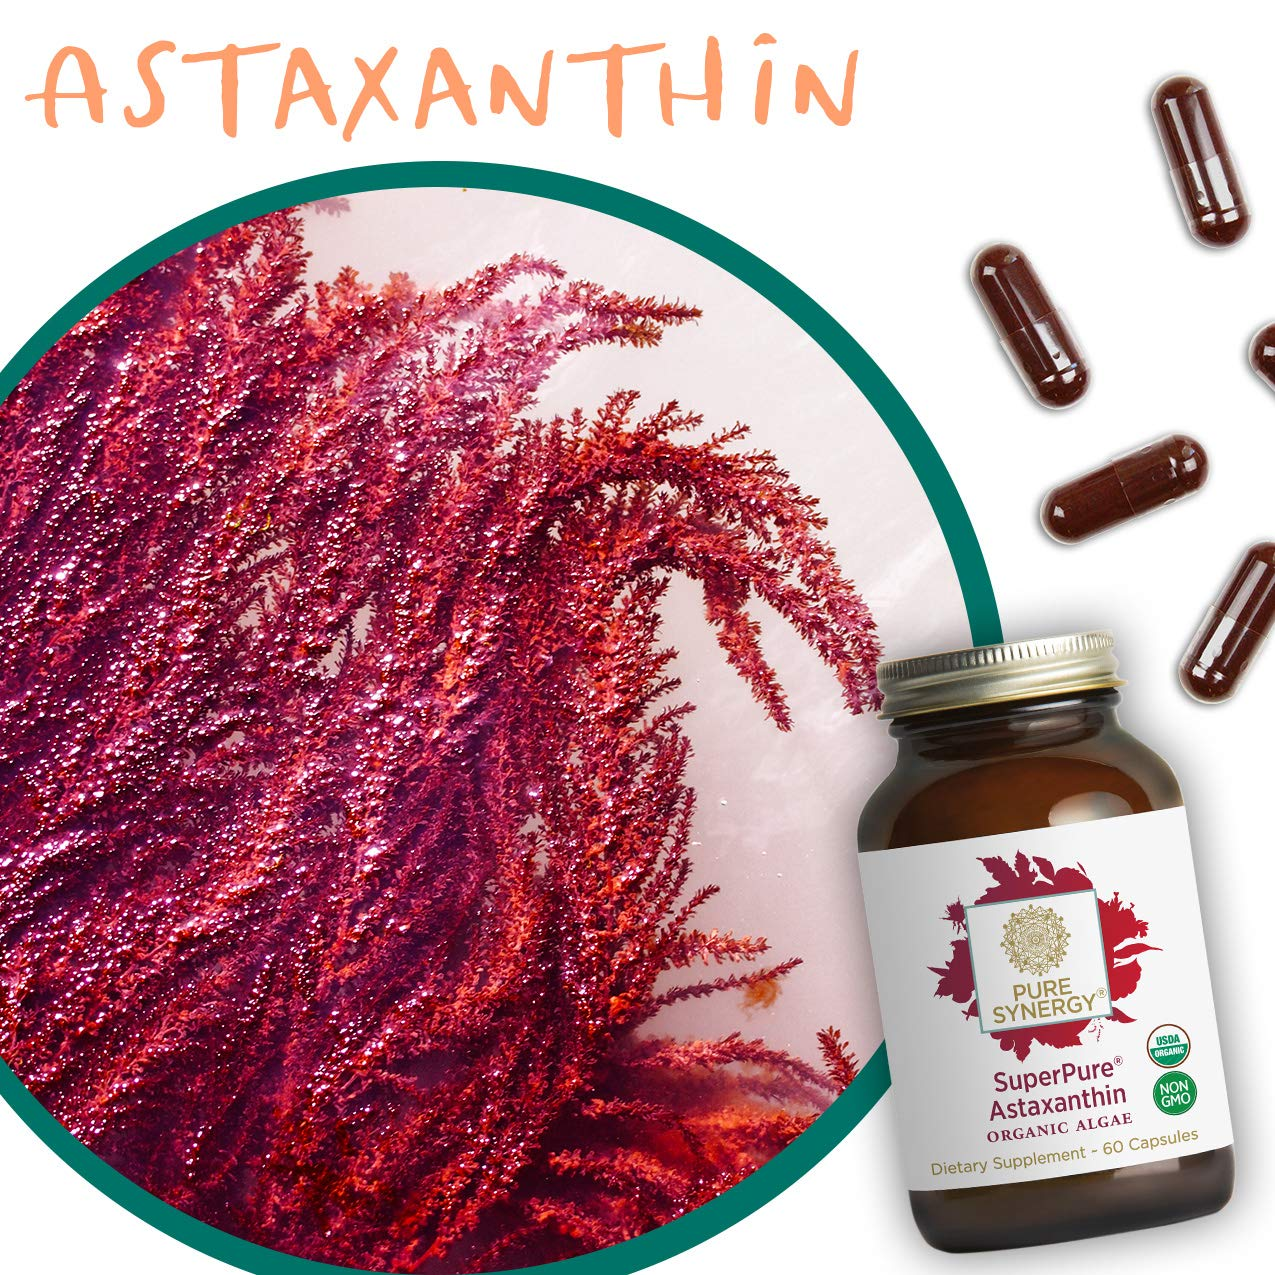 Pure Synergy USDA Organic SuperPure® Astaxanthin Extract (60 Capsules) Nature's Supreme Antioxidant by Pure Synergy